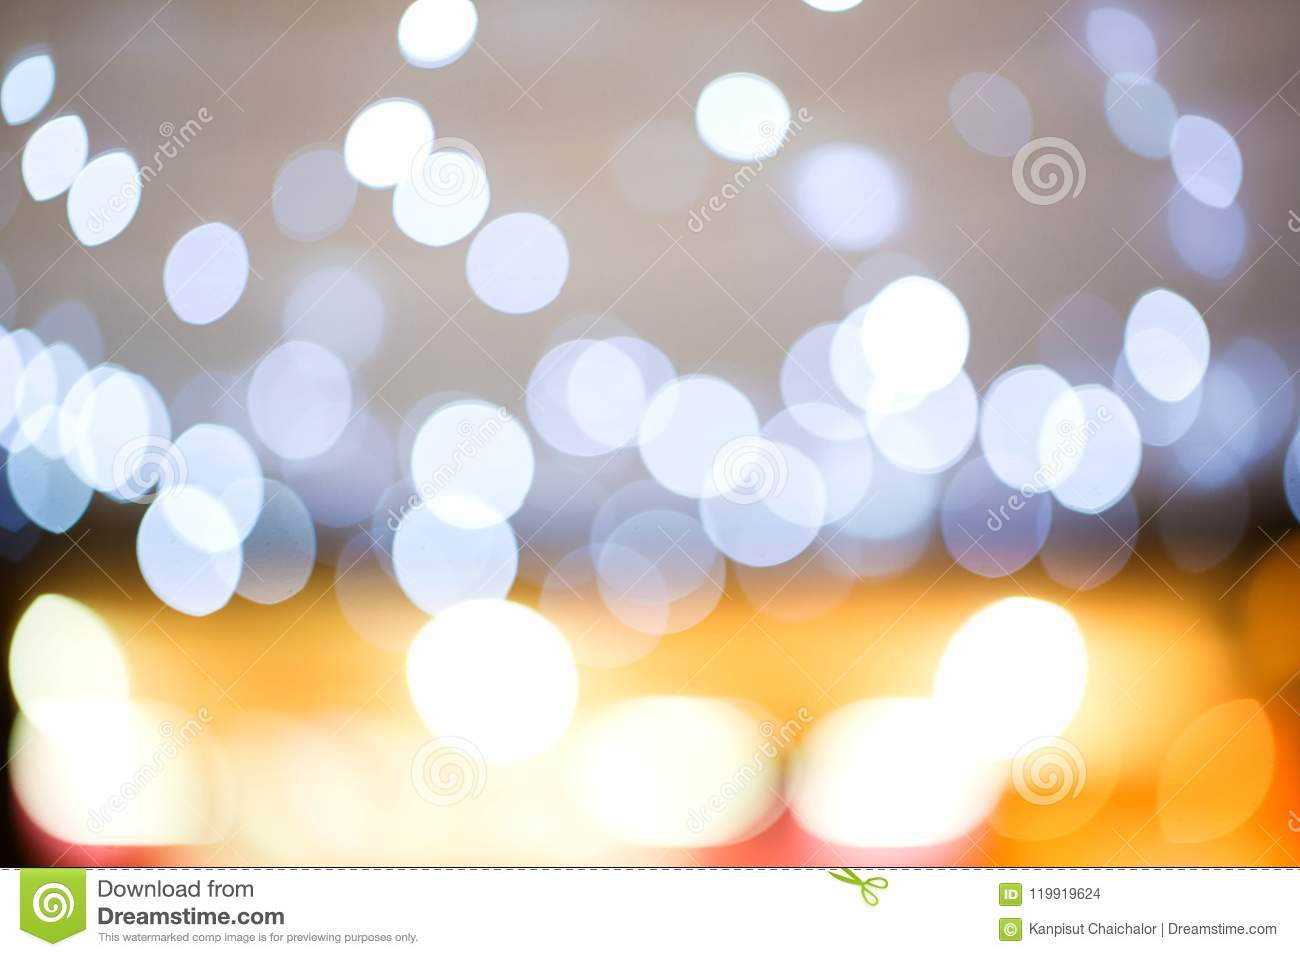 golden light bokeh. image created by soft and blur style for background,